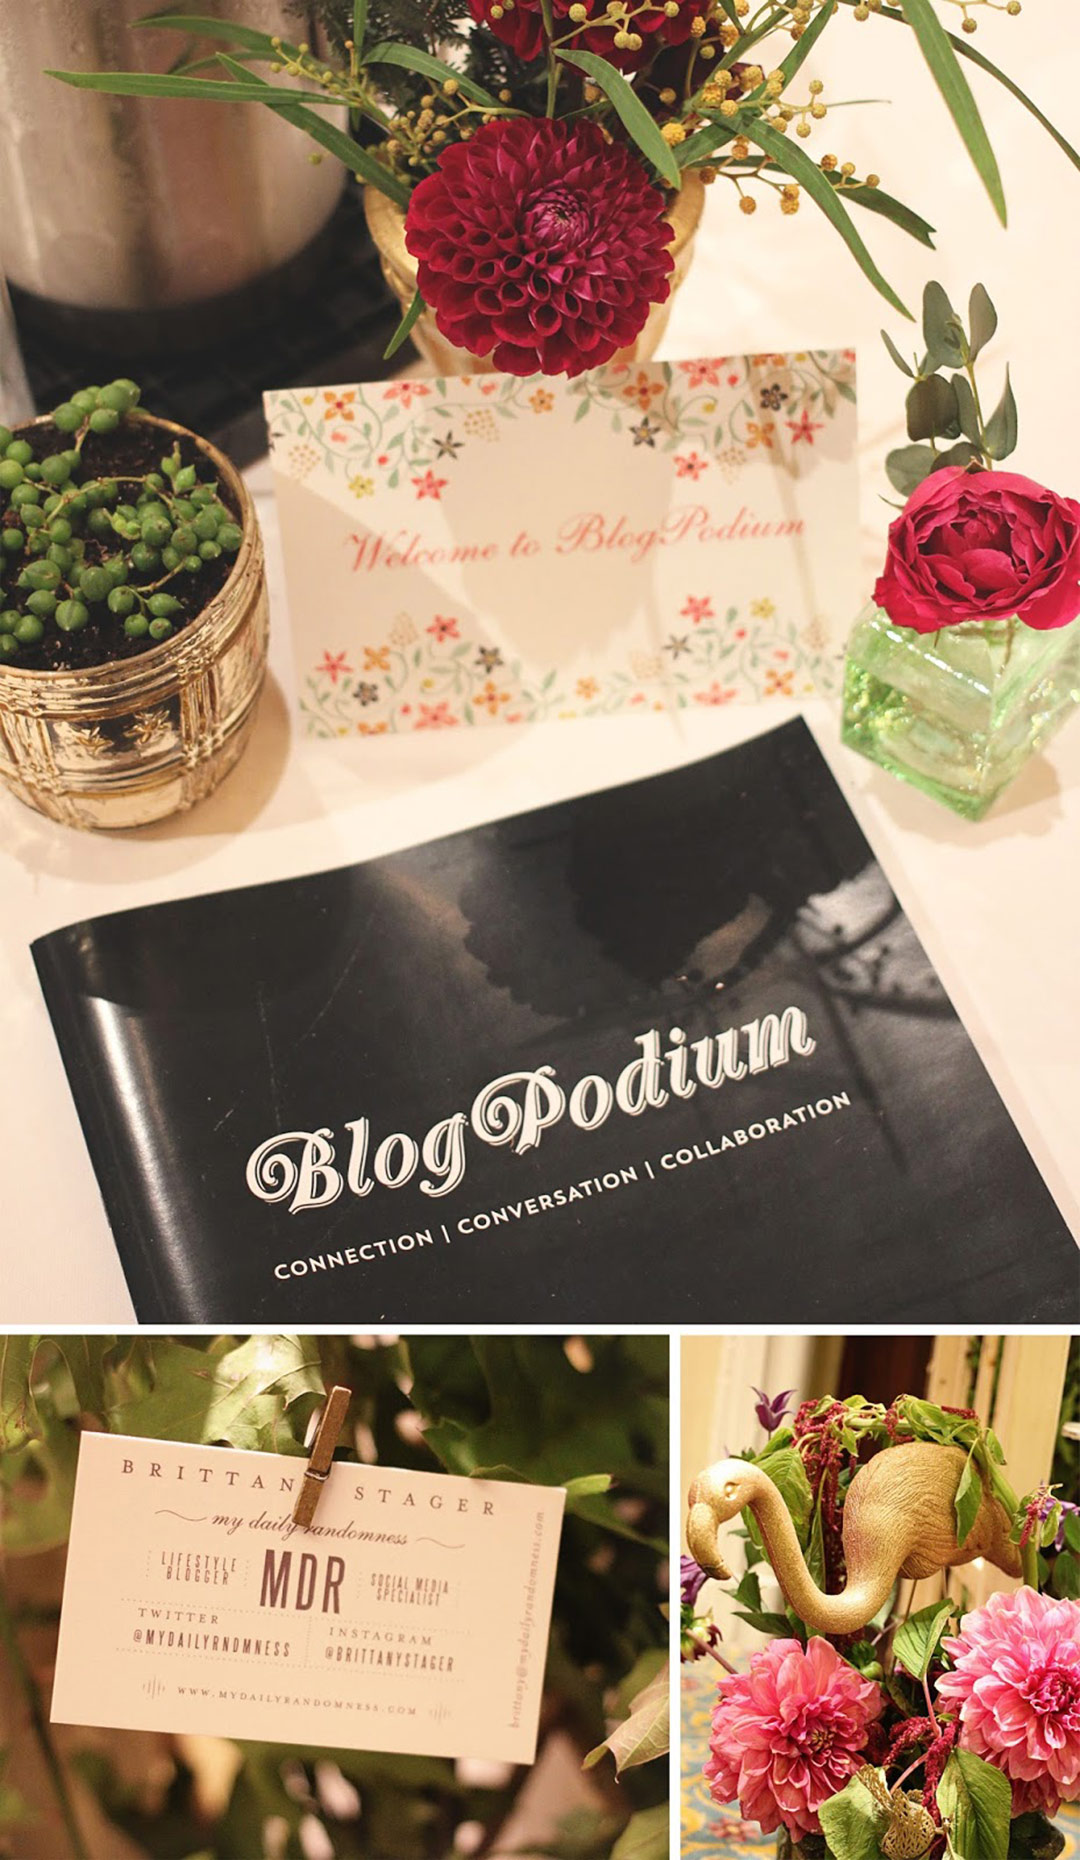 Welcome-BlogPodium-Conference